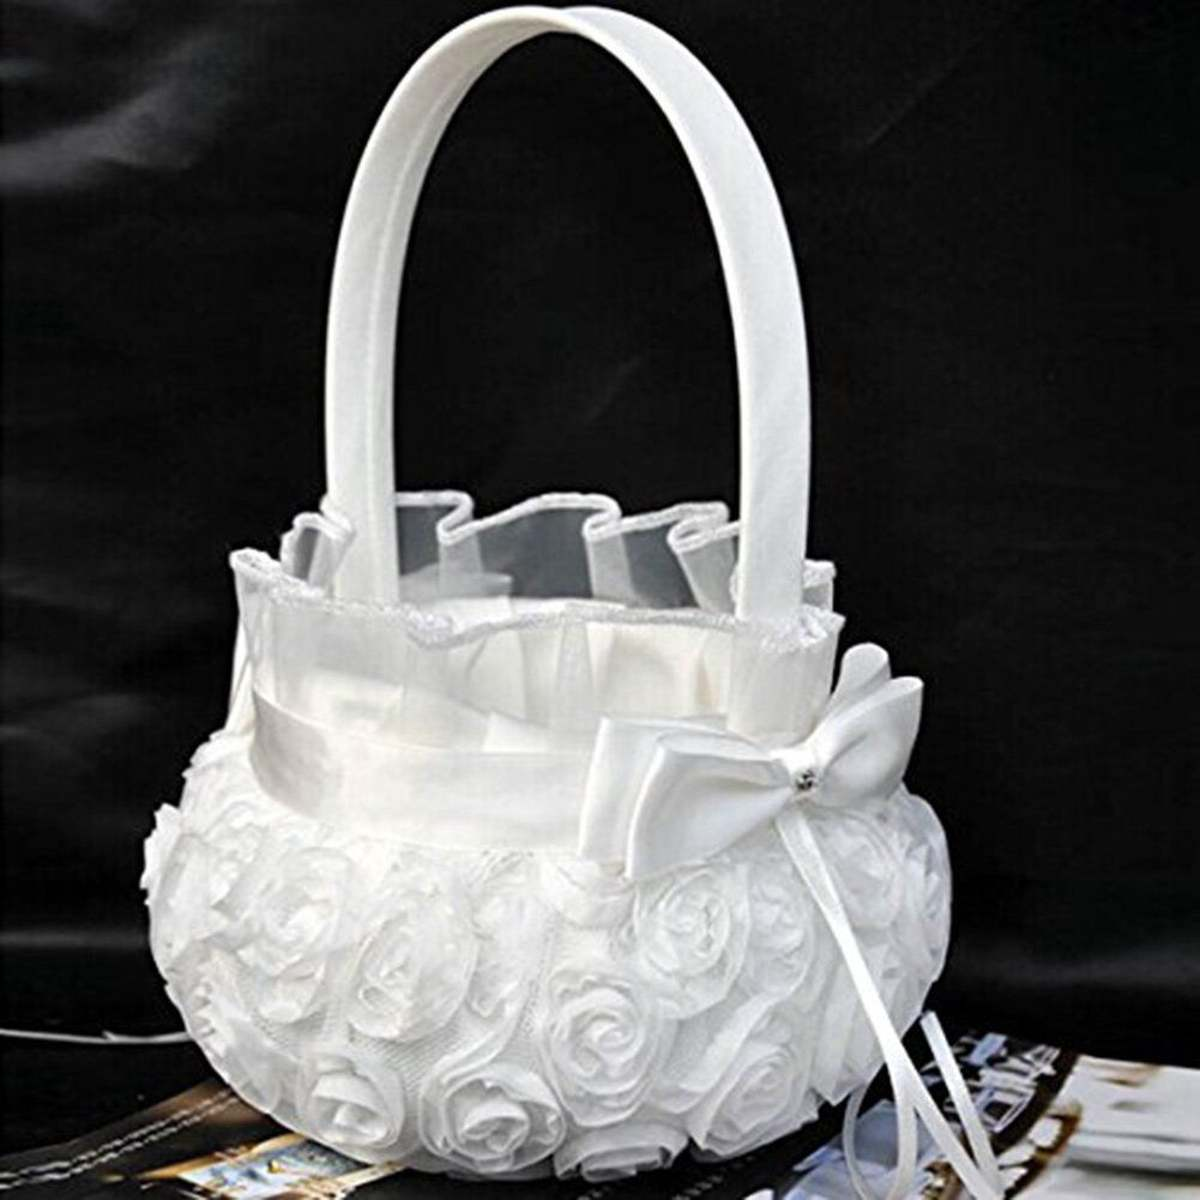 16x21cm White Rose Satin Bowknot Lace Flower Basket Wedding Ceremony Party Flower Girl Basket Supplies Home Festival Decoration16x21cm White Rose Satin Bowknot Lace Flower Basket Wedding Ceremony Party Flower Girl Basket Supplies Home Festival Decoration